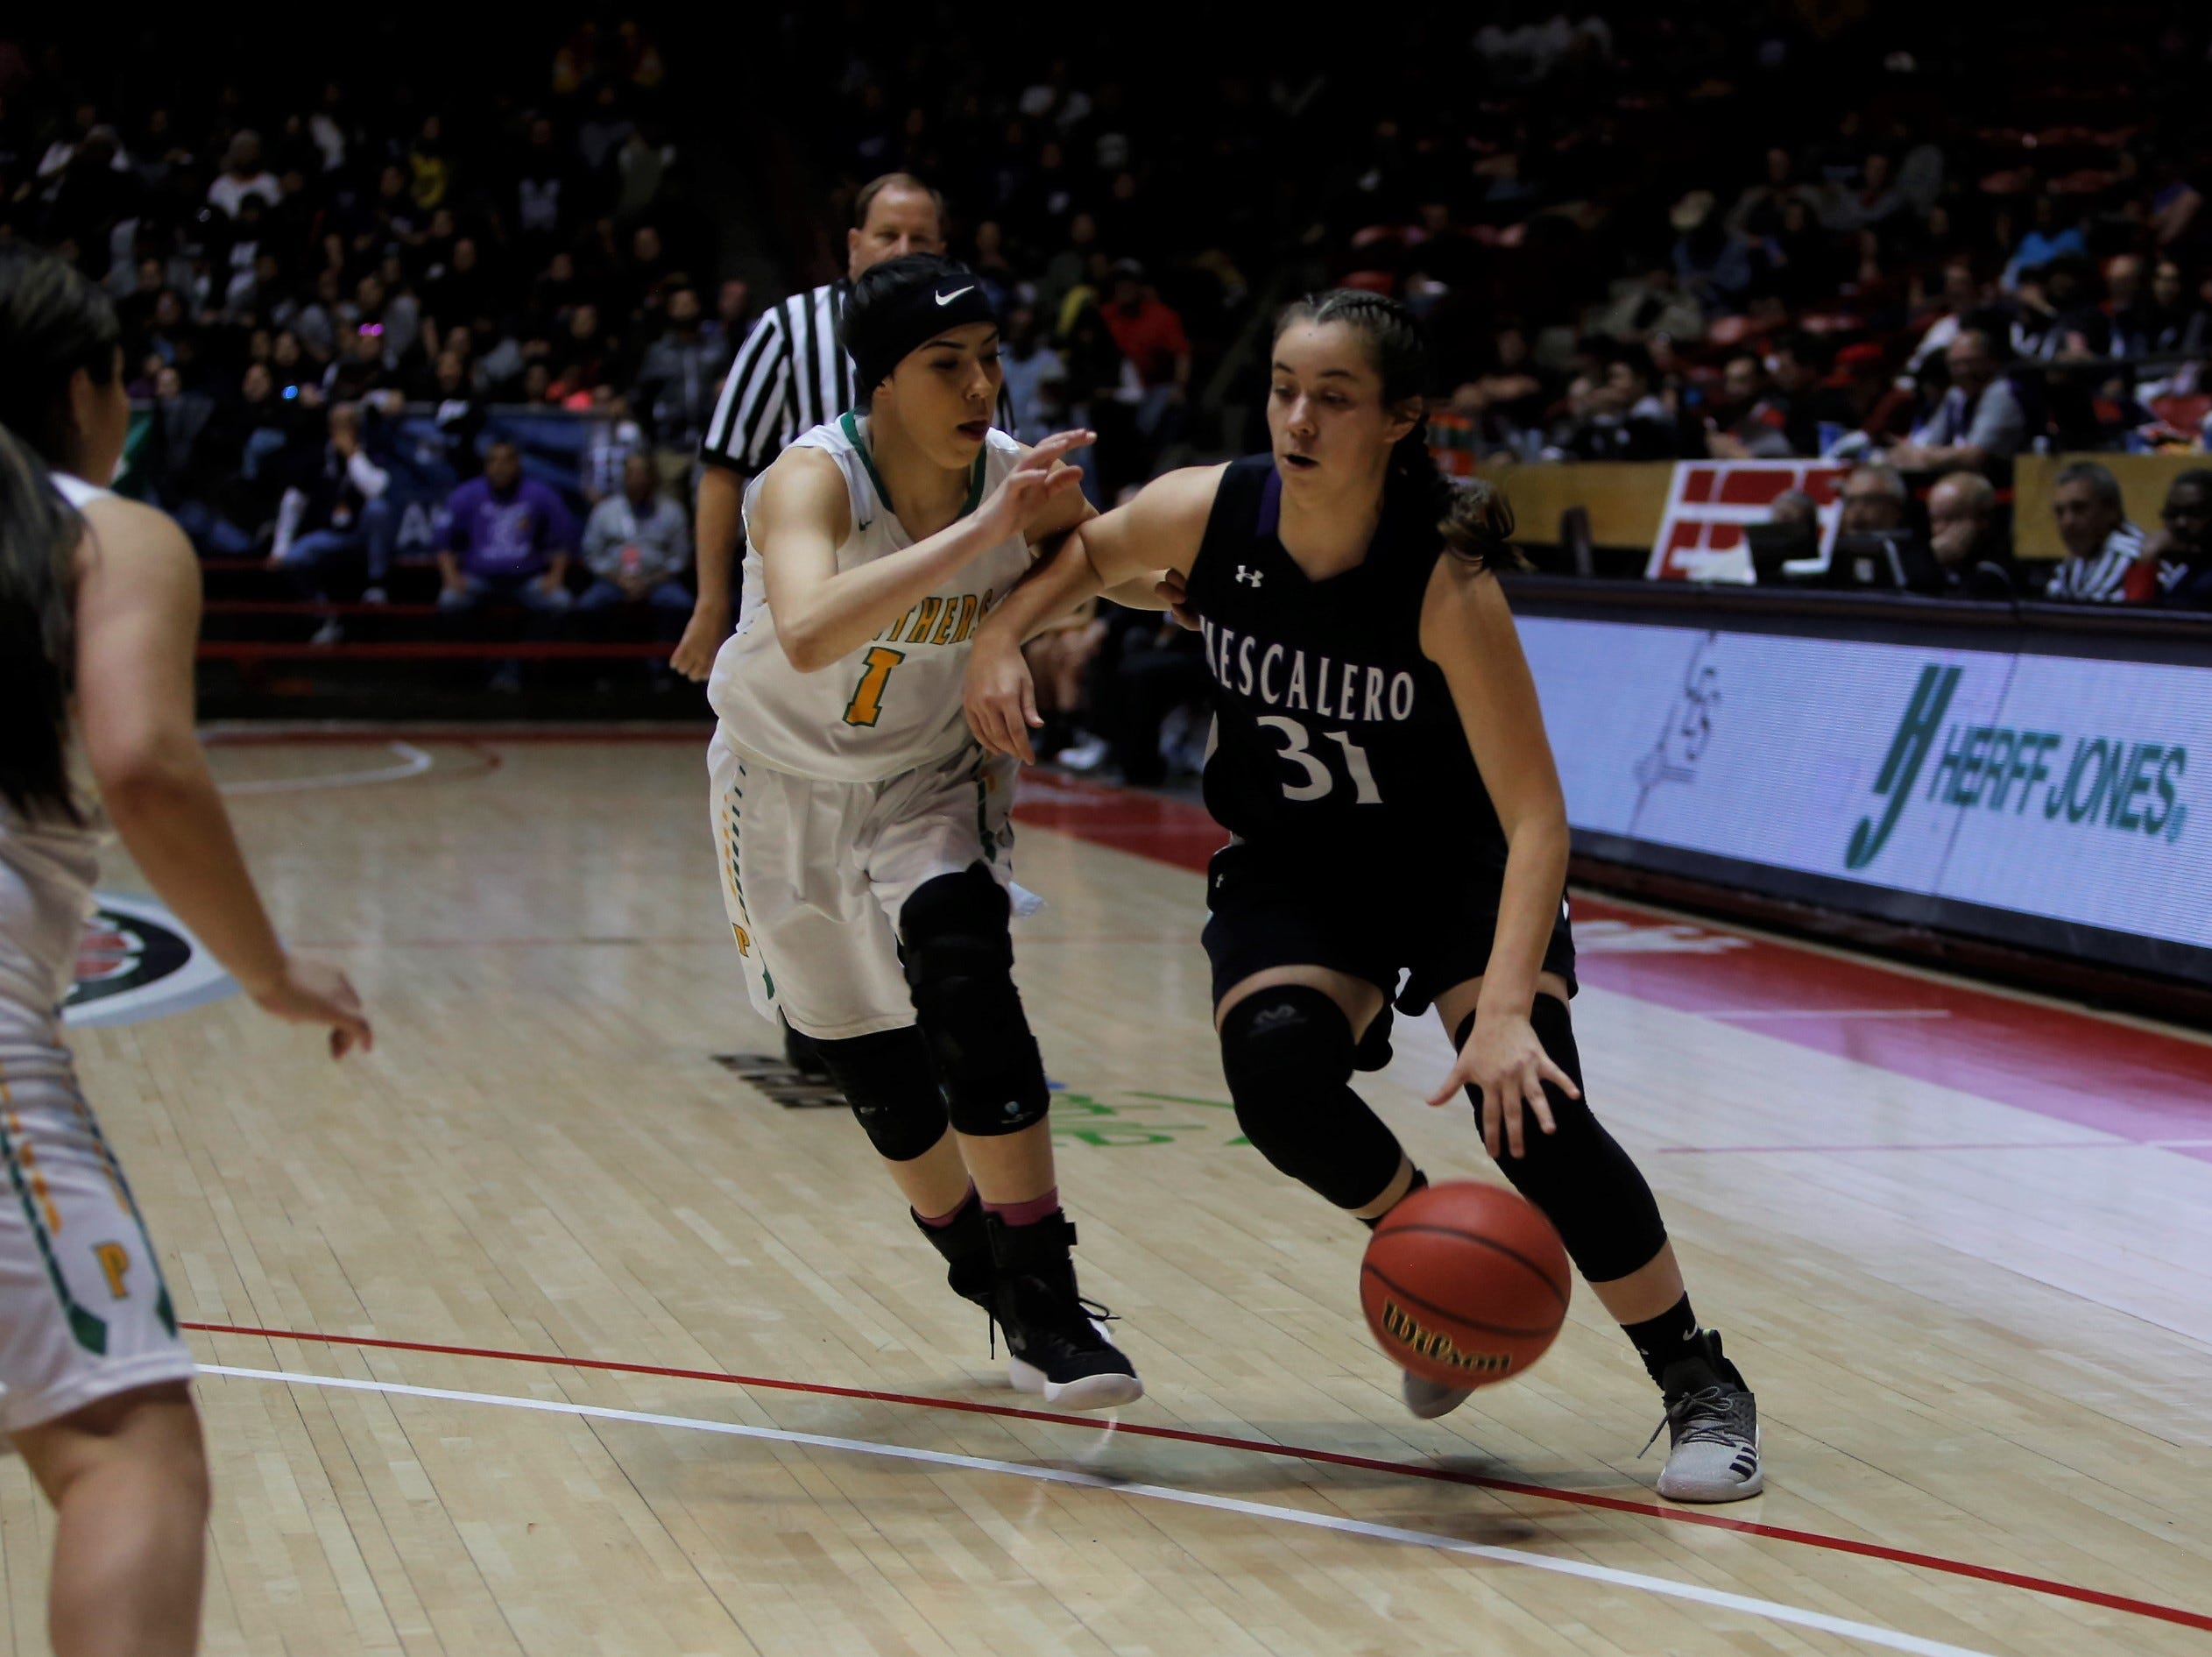 Mescalero Apache's Fallon Velasquez drives toward the basket against Pecos's Trinity Herrera during Friday's 2A state championship game at Dreamstyle Arena in Albuquerque.